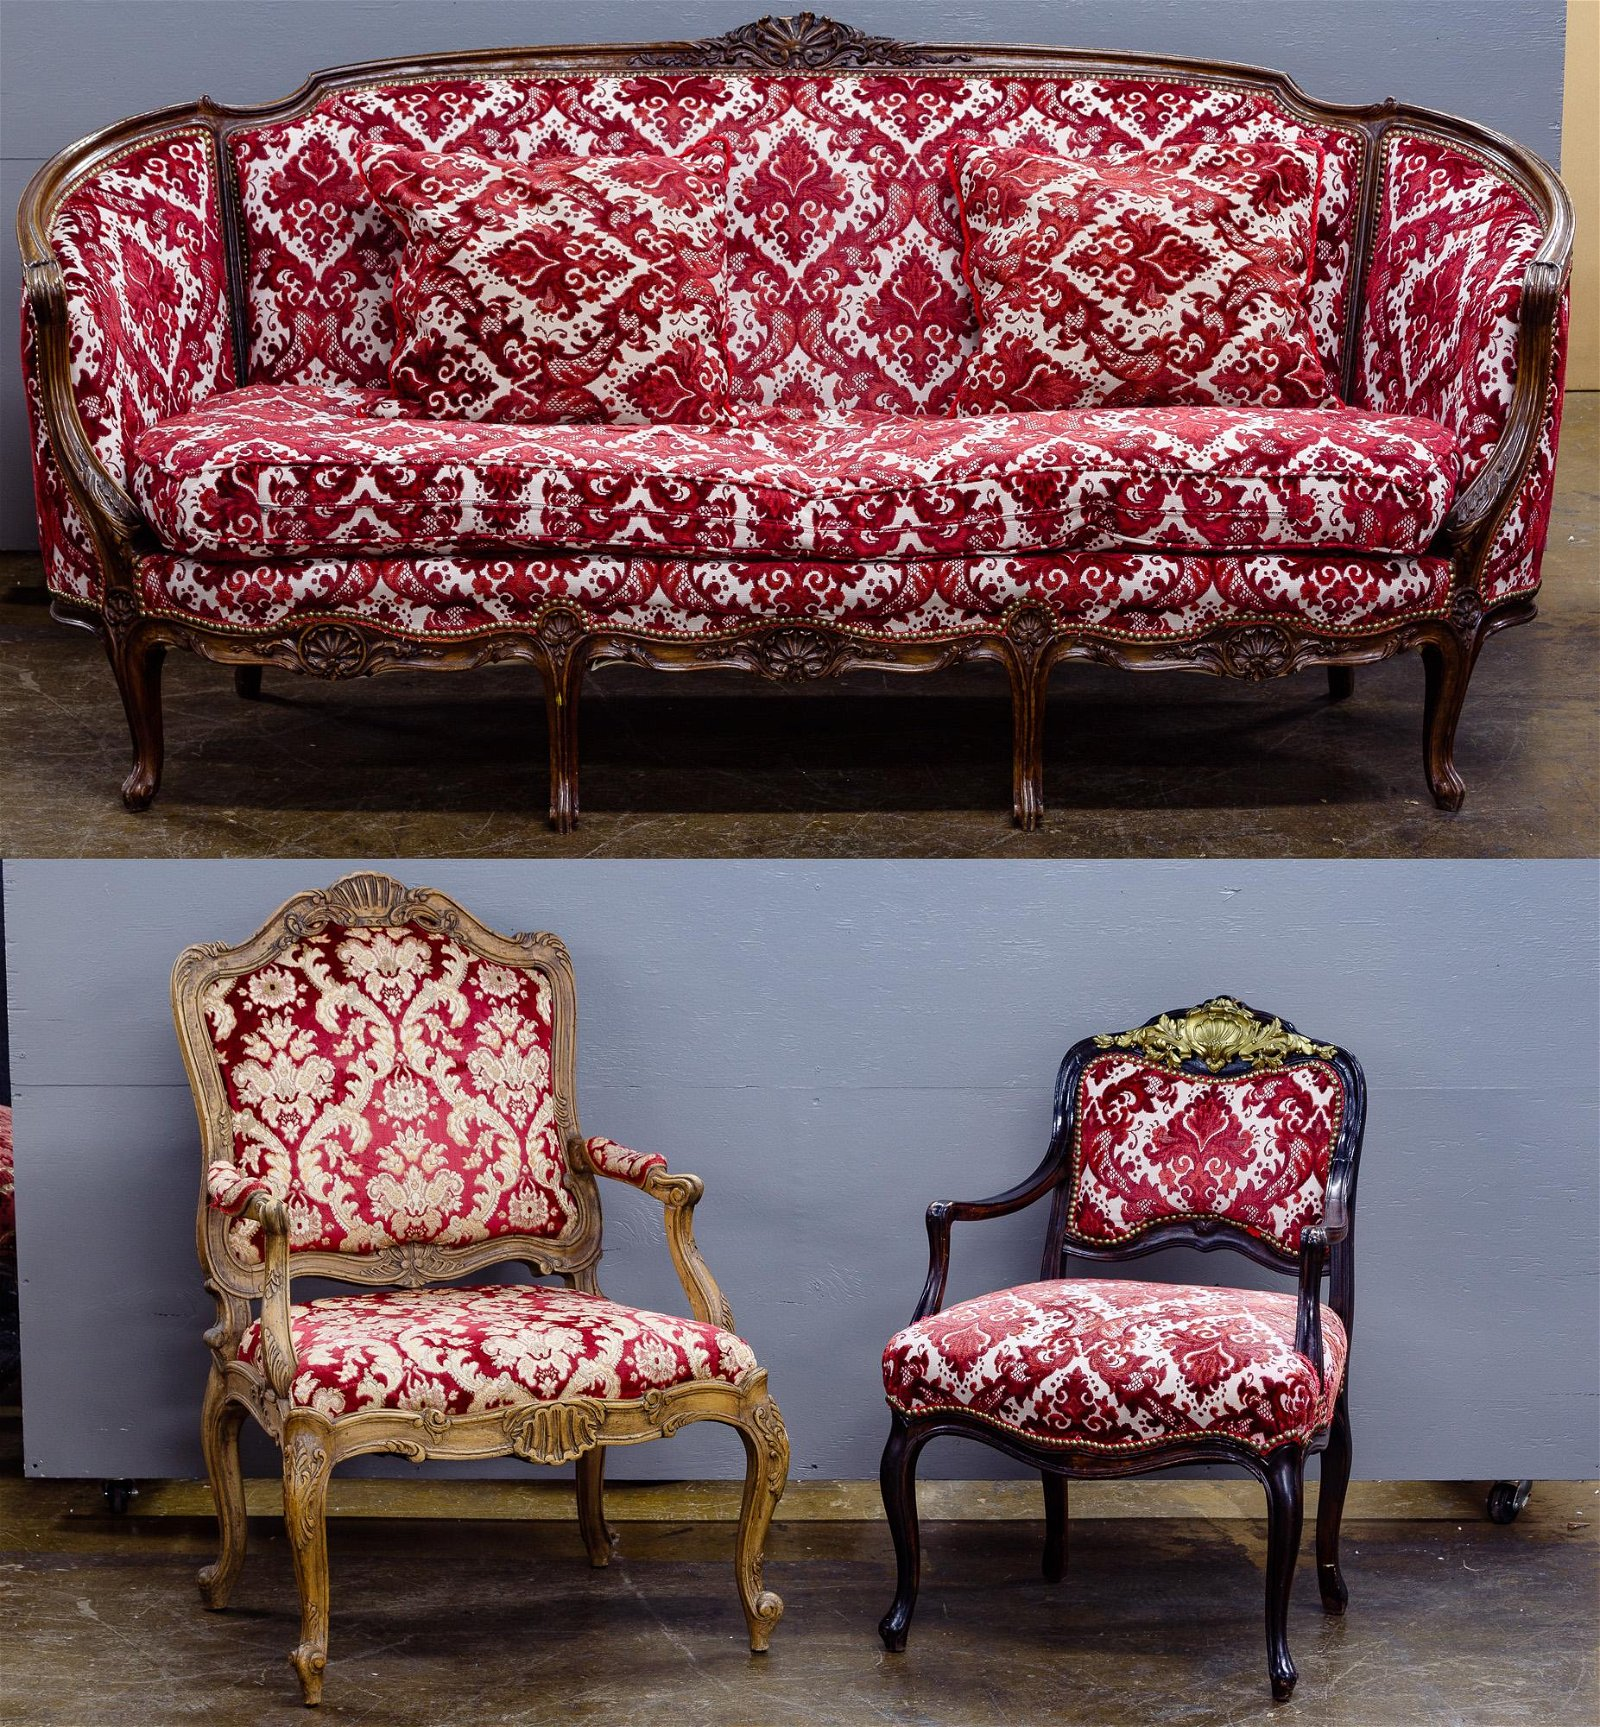 Victorian Style Sofa and Arm Chair Assortment